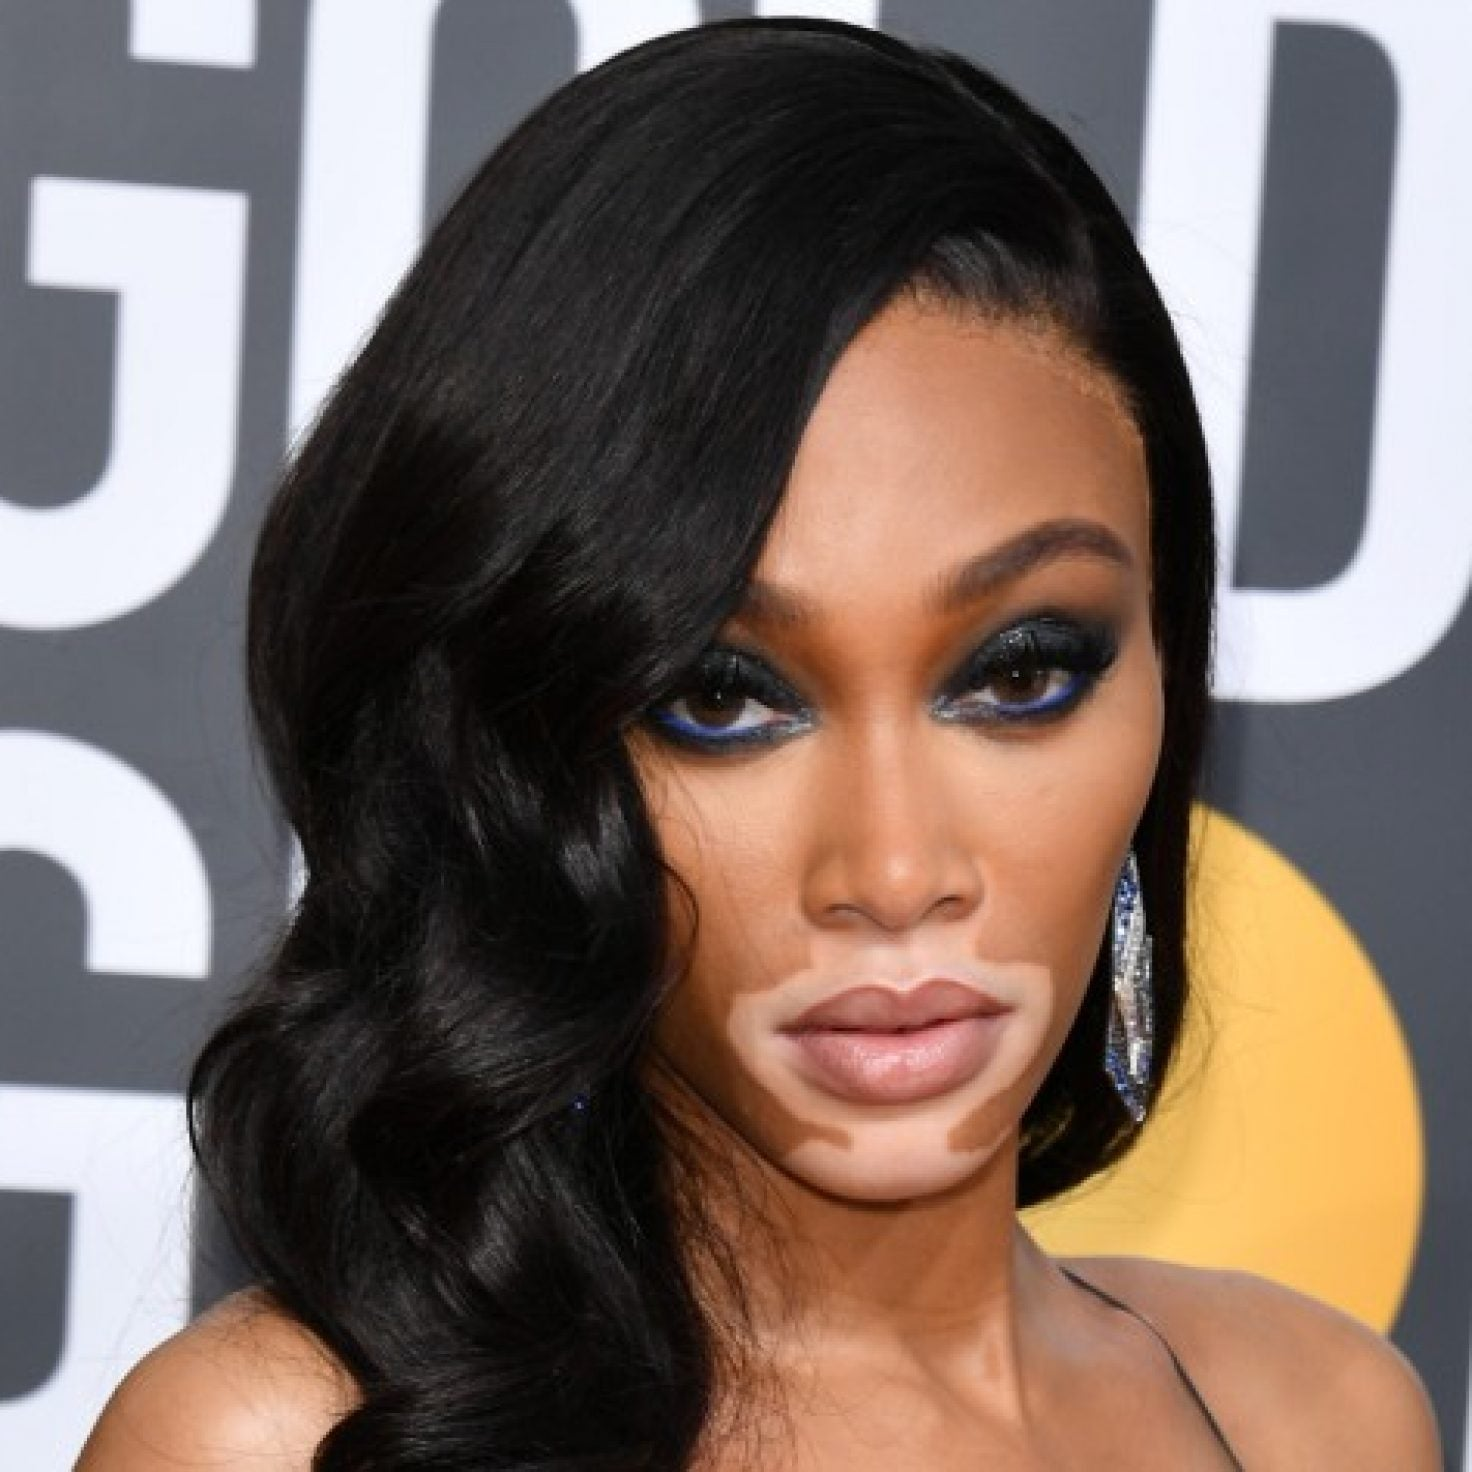 Winnie Harlow's Stunning Golden Globes Beauty Look Included This $12 Product